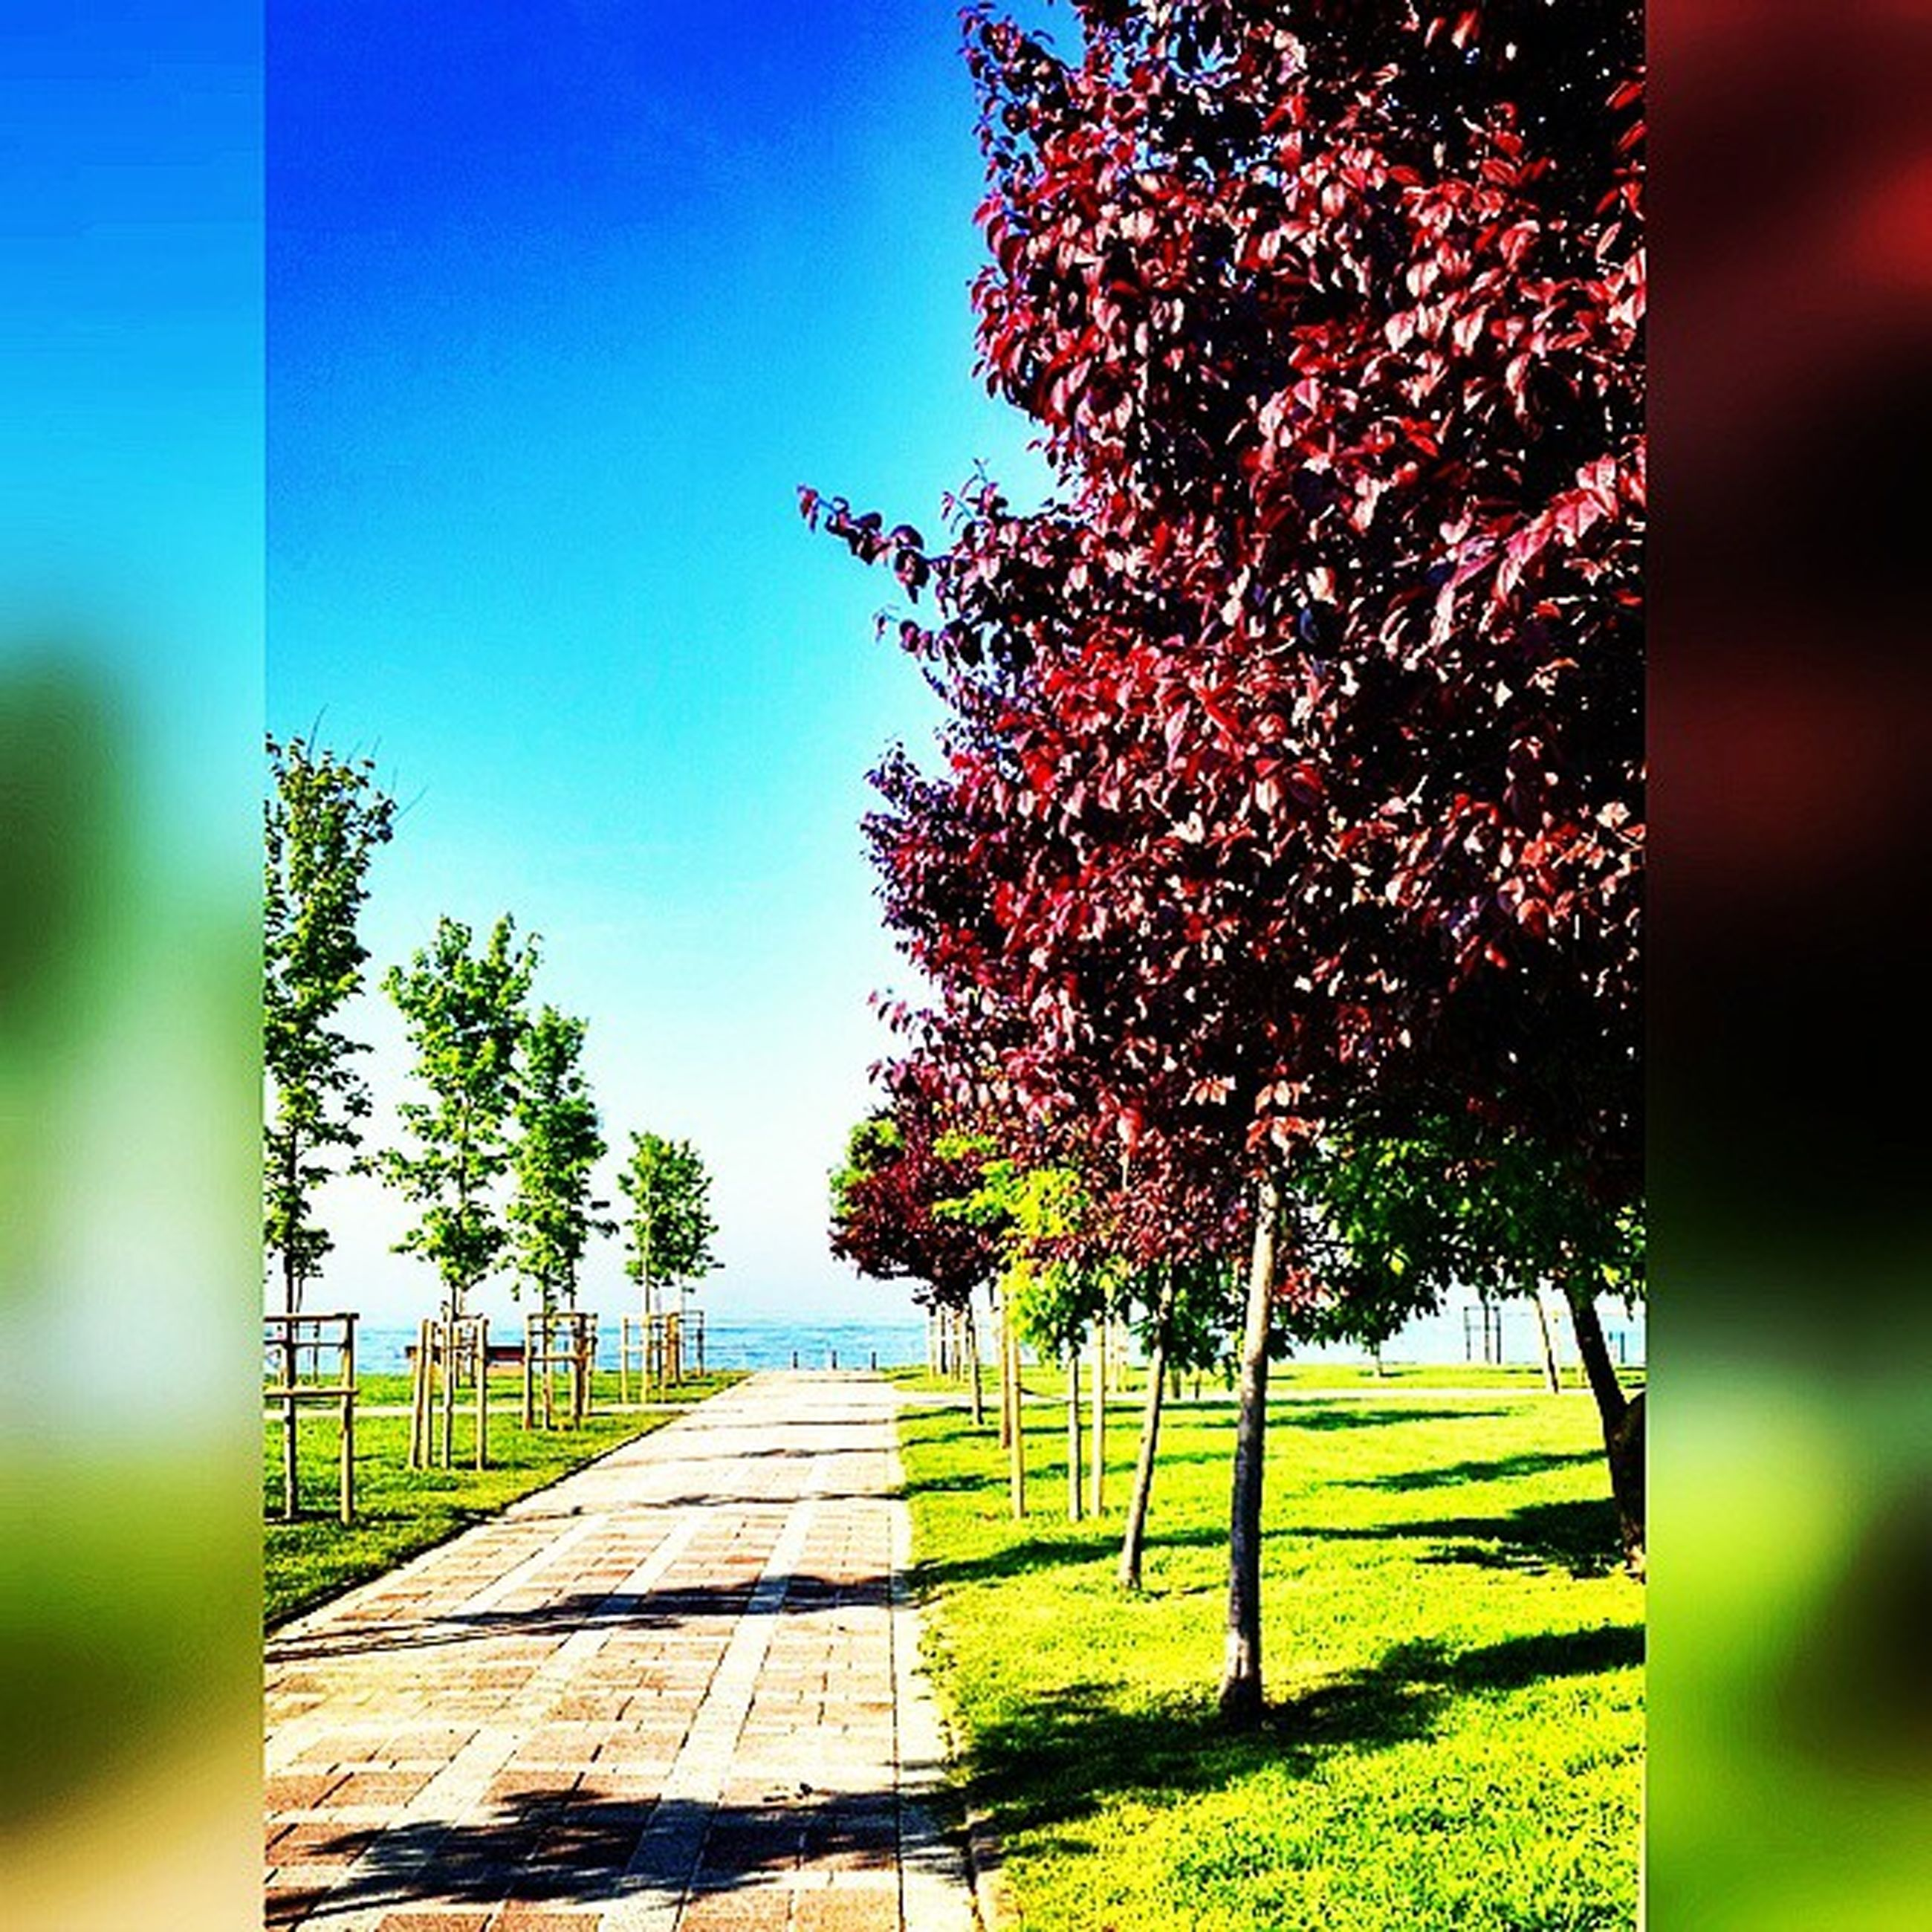 tree, growth, the way forward, grass, footpath, nature, tranquility, branch, park - man made space, sunlight, beauty in nature, green color, clear sky, walkway, tranquil scene, day, empty, field, plant, tree trunk